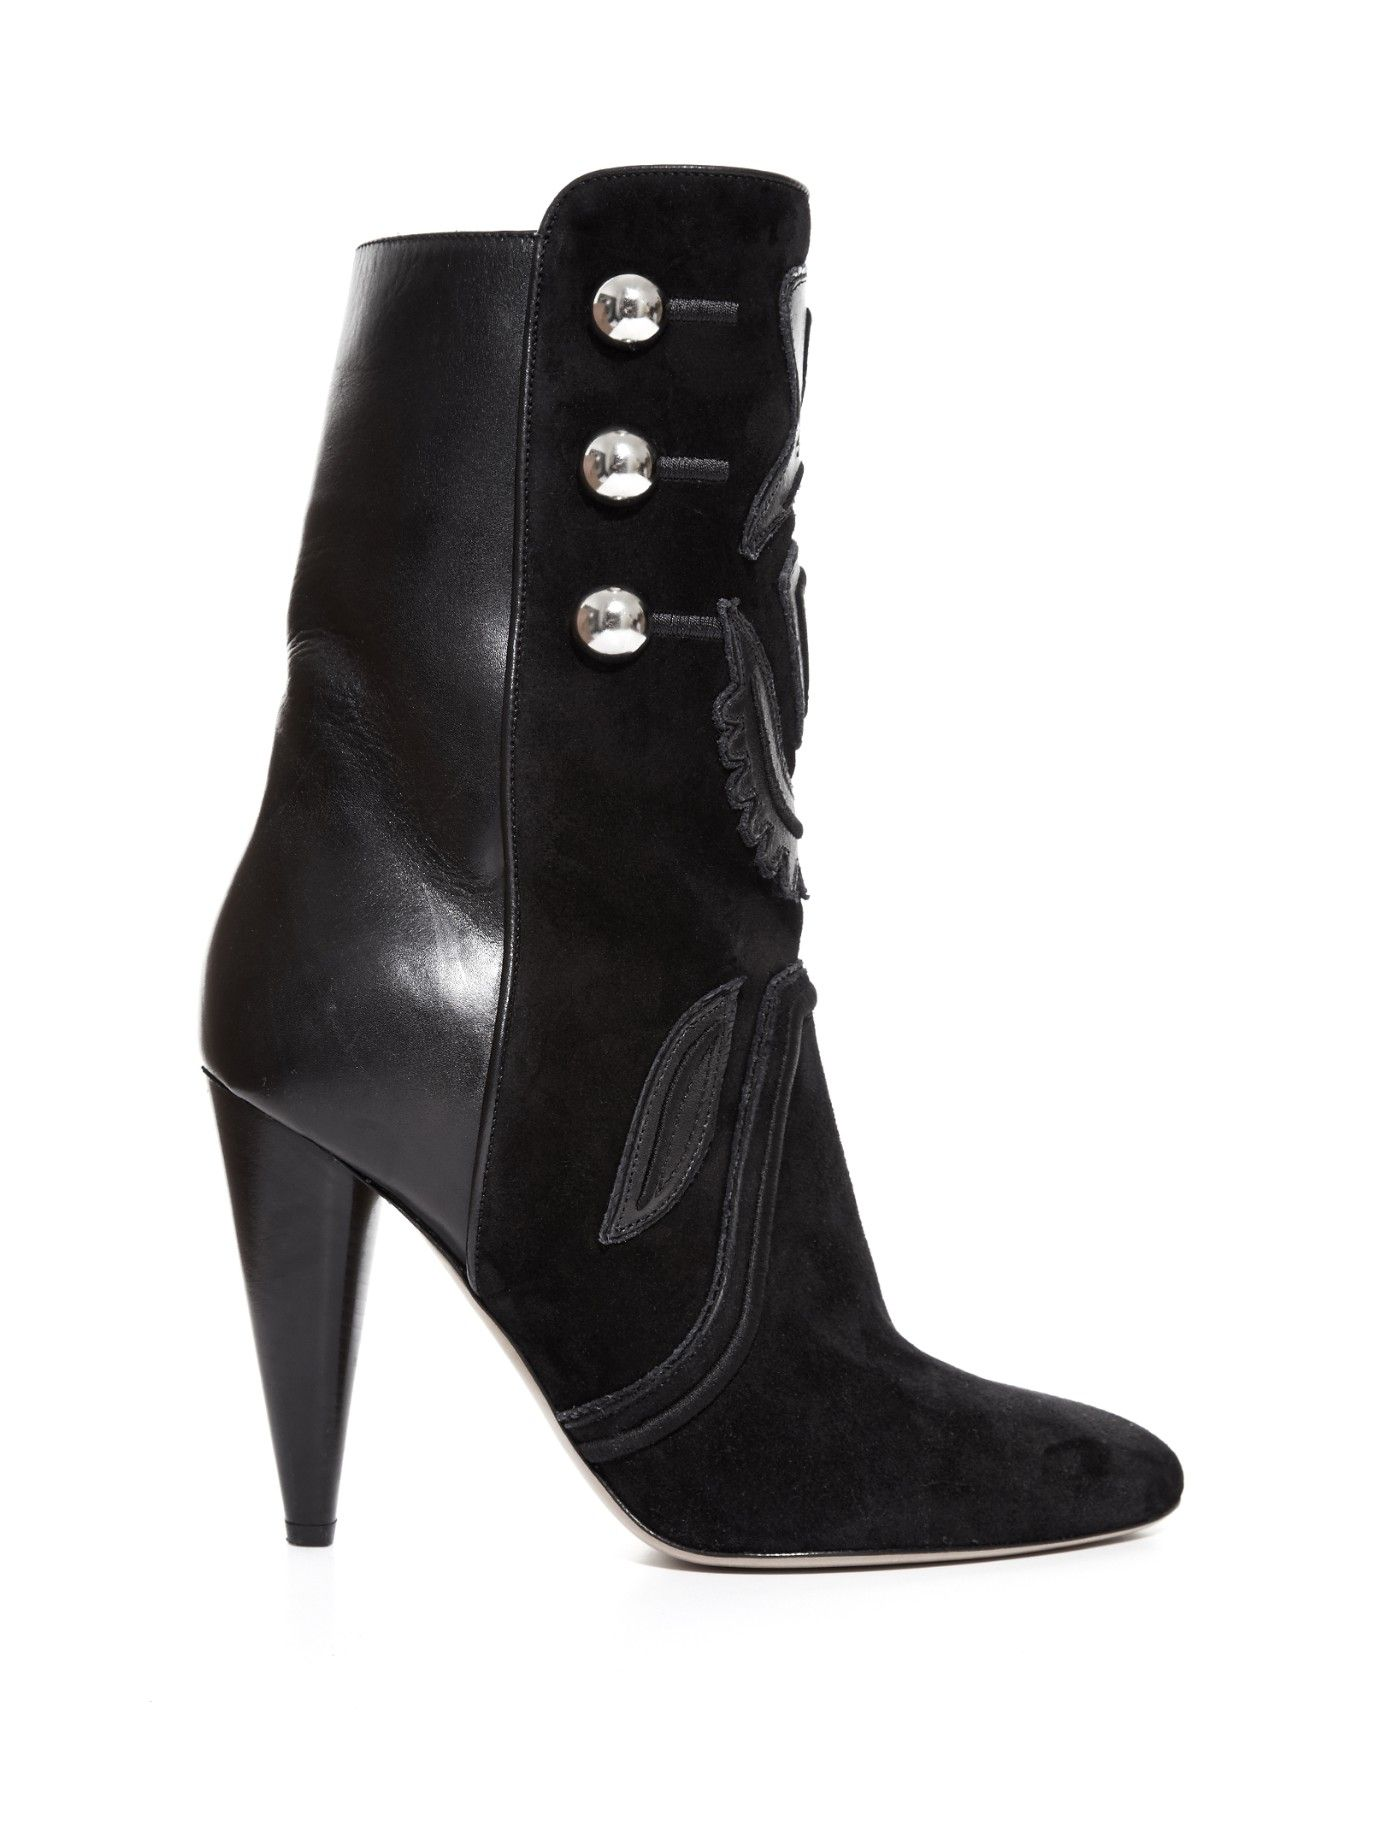 Liv suede and leather ankle boots | Isabel Marant | MATCHESFASHION.COM US